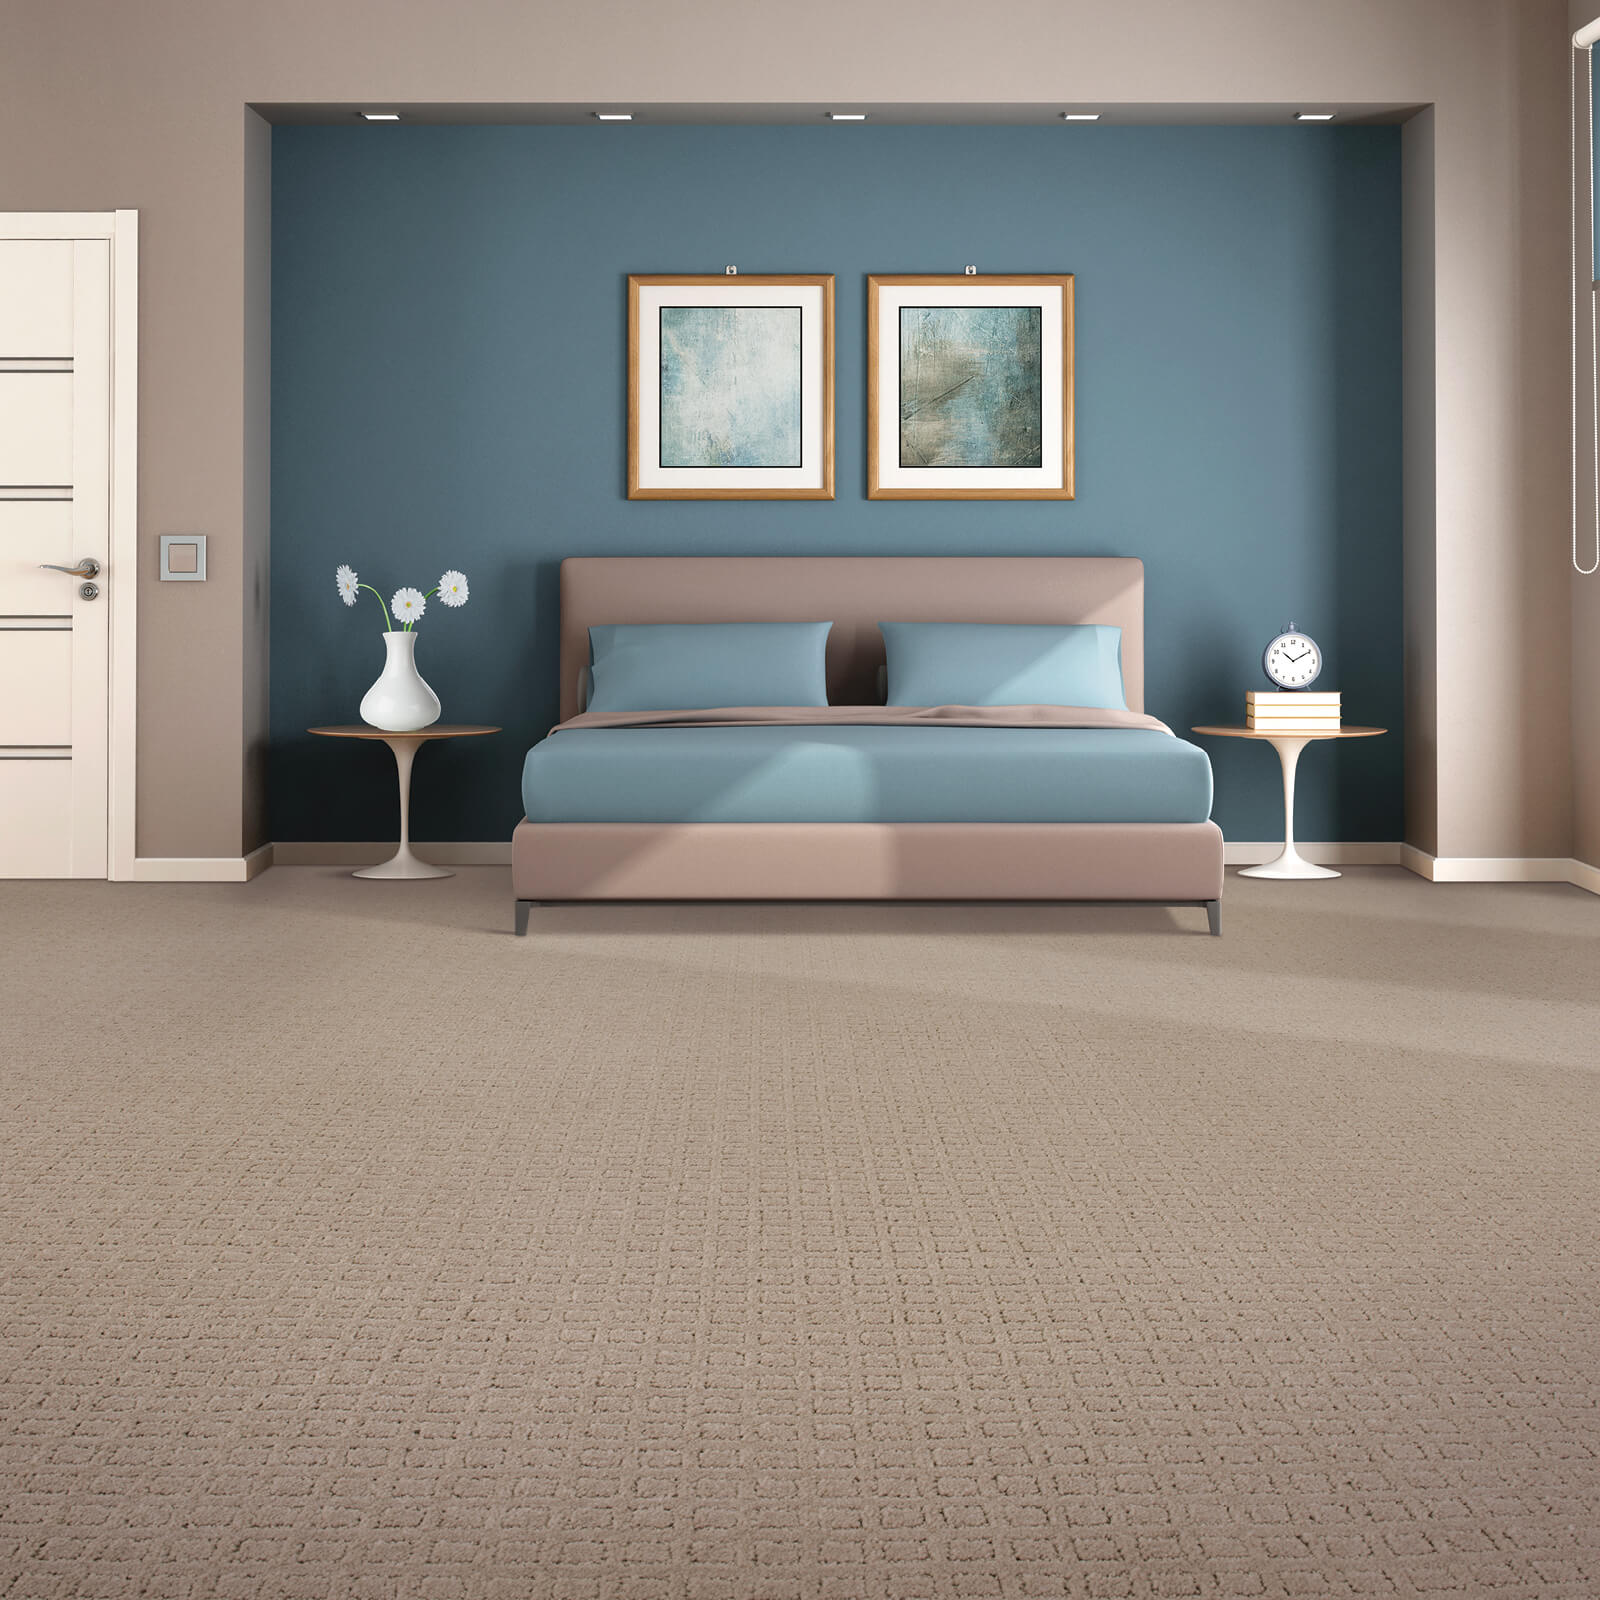 Traditional beauty of bedroom | Flooring by Wilson's Carpet Plus